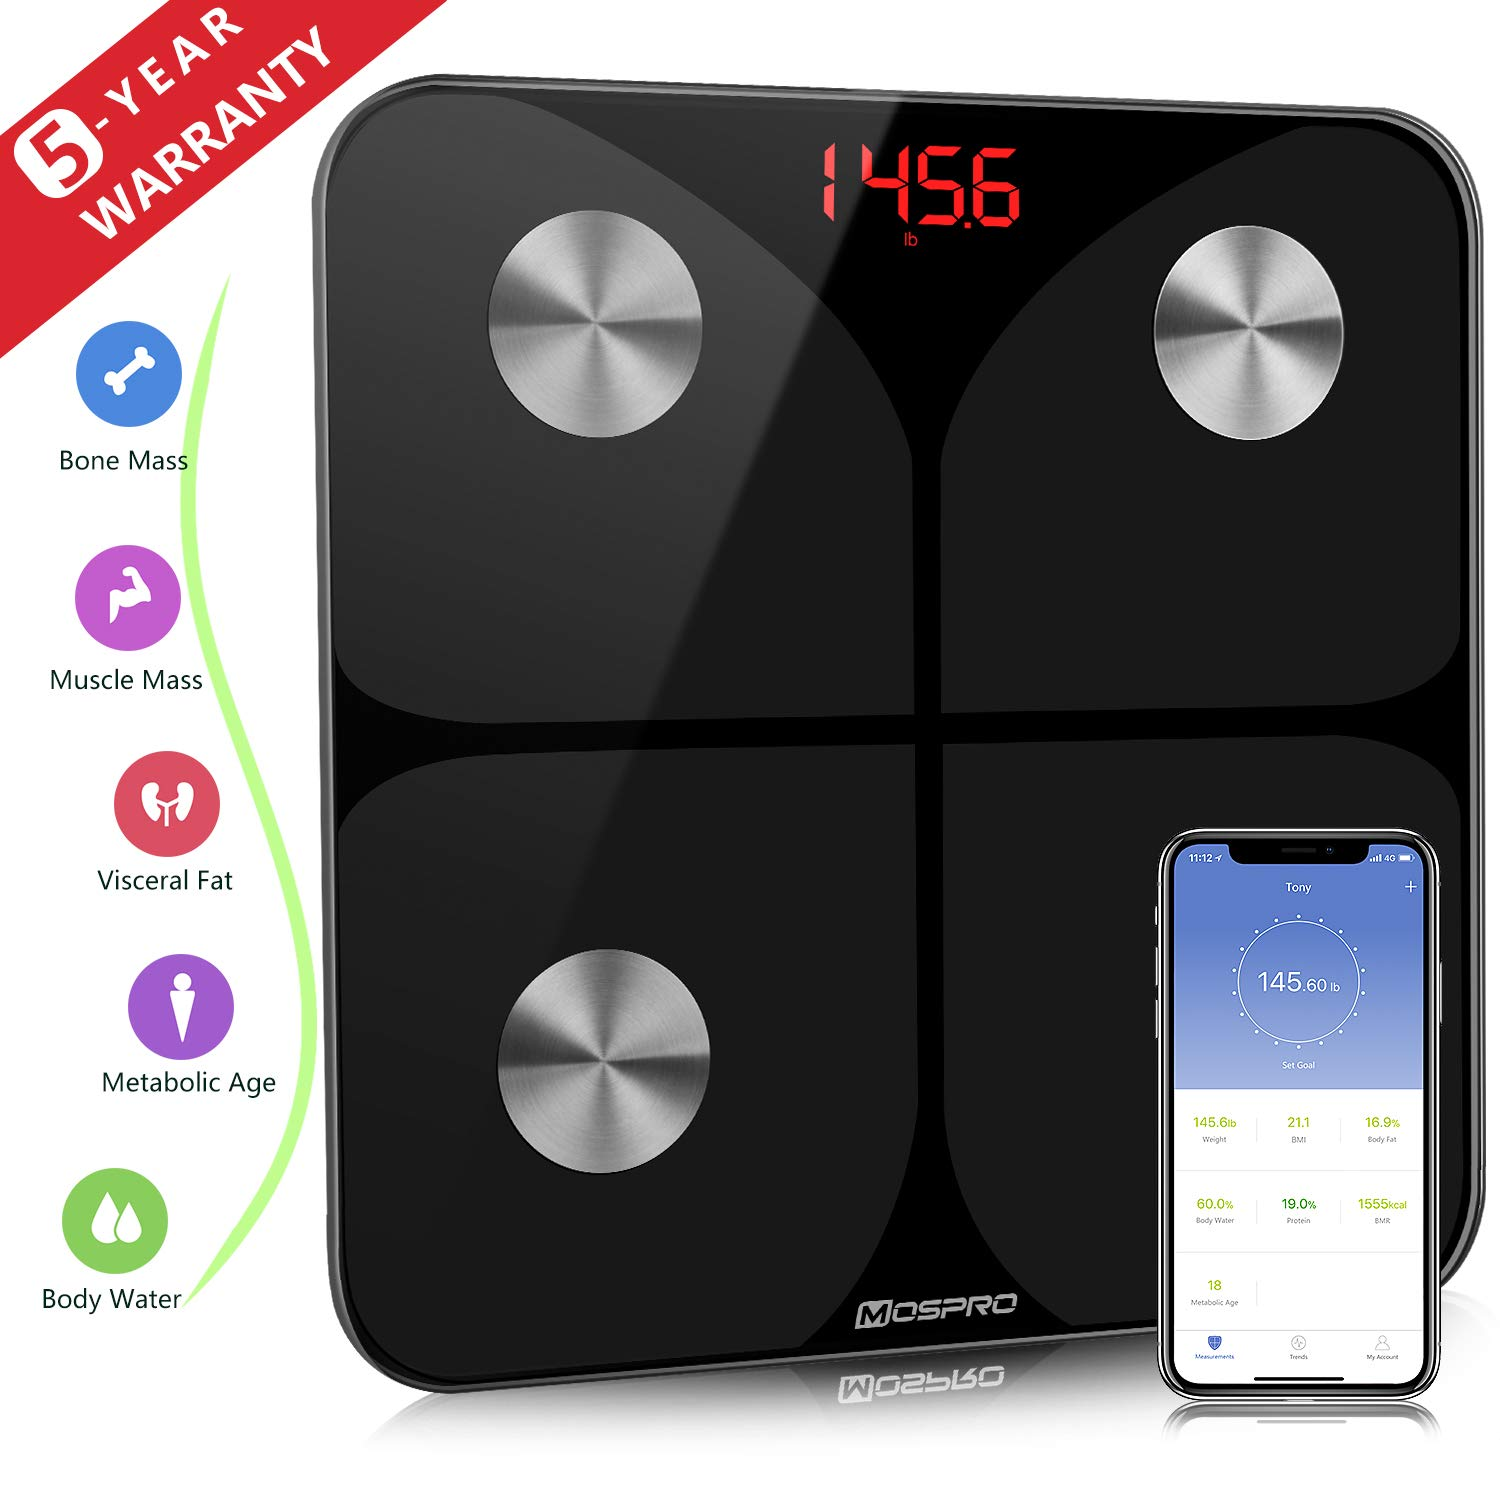 Smart Body Fat Weight Scale - Digital Bathroom BMI Scale Wireless Body Composition Analyzer Health Monitor with iOS and Android App for Body Weight Fat Water BMR and More